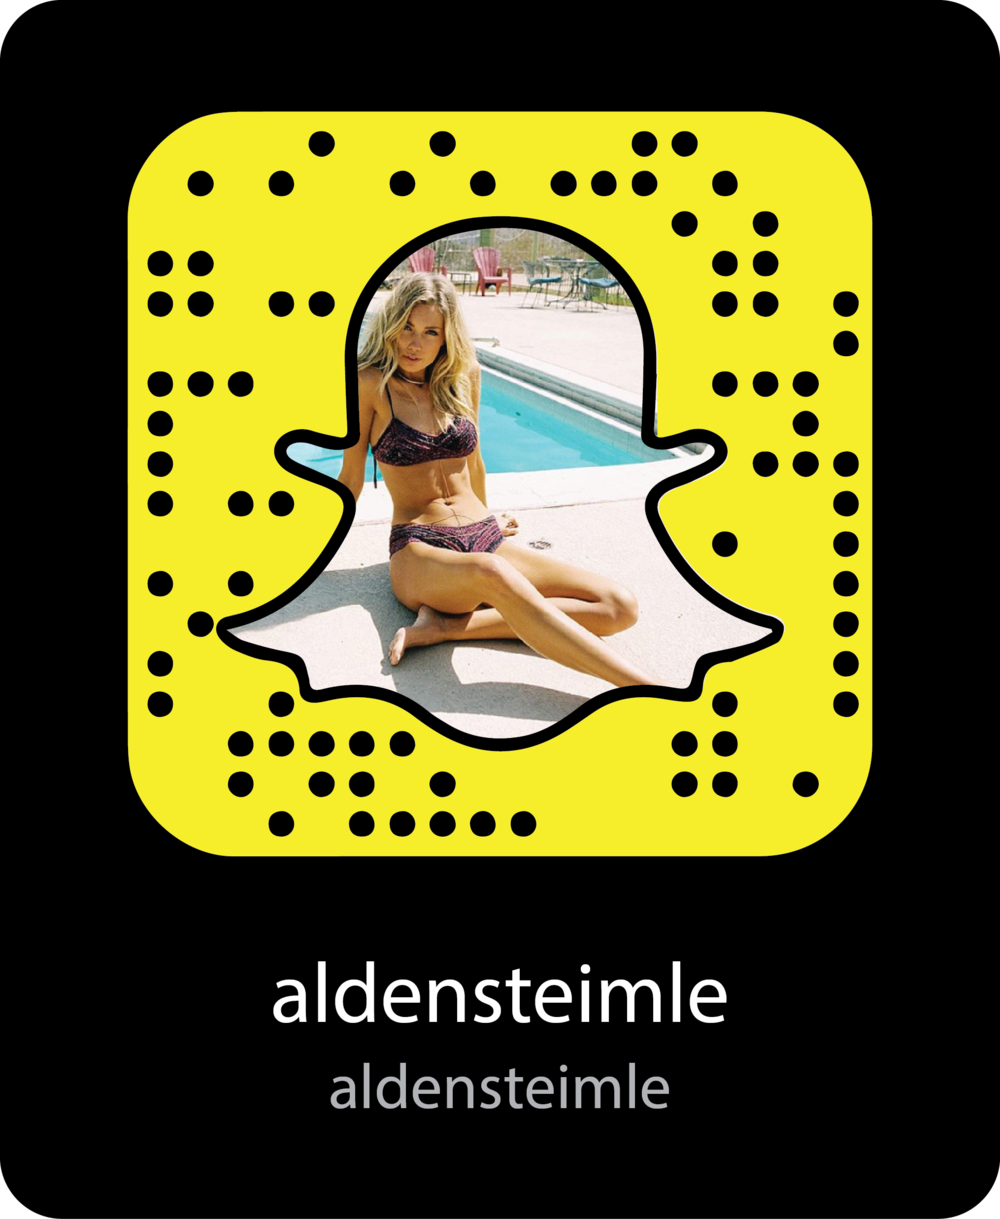 aldensteimle-Sexy-snapchat-snapcode.png